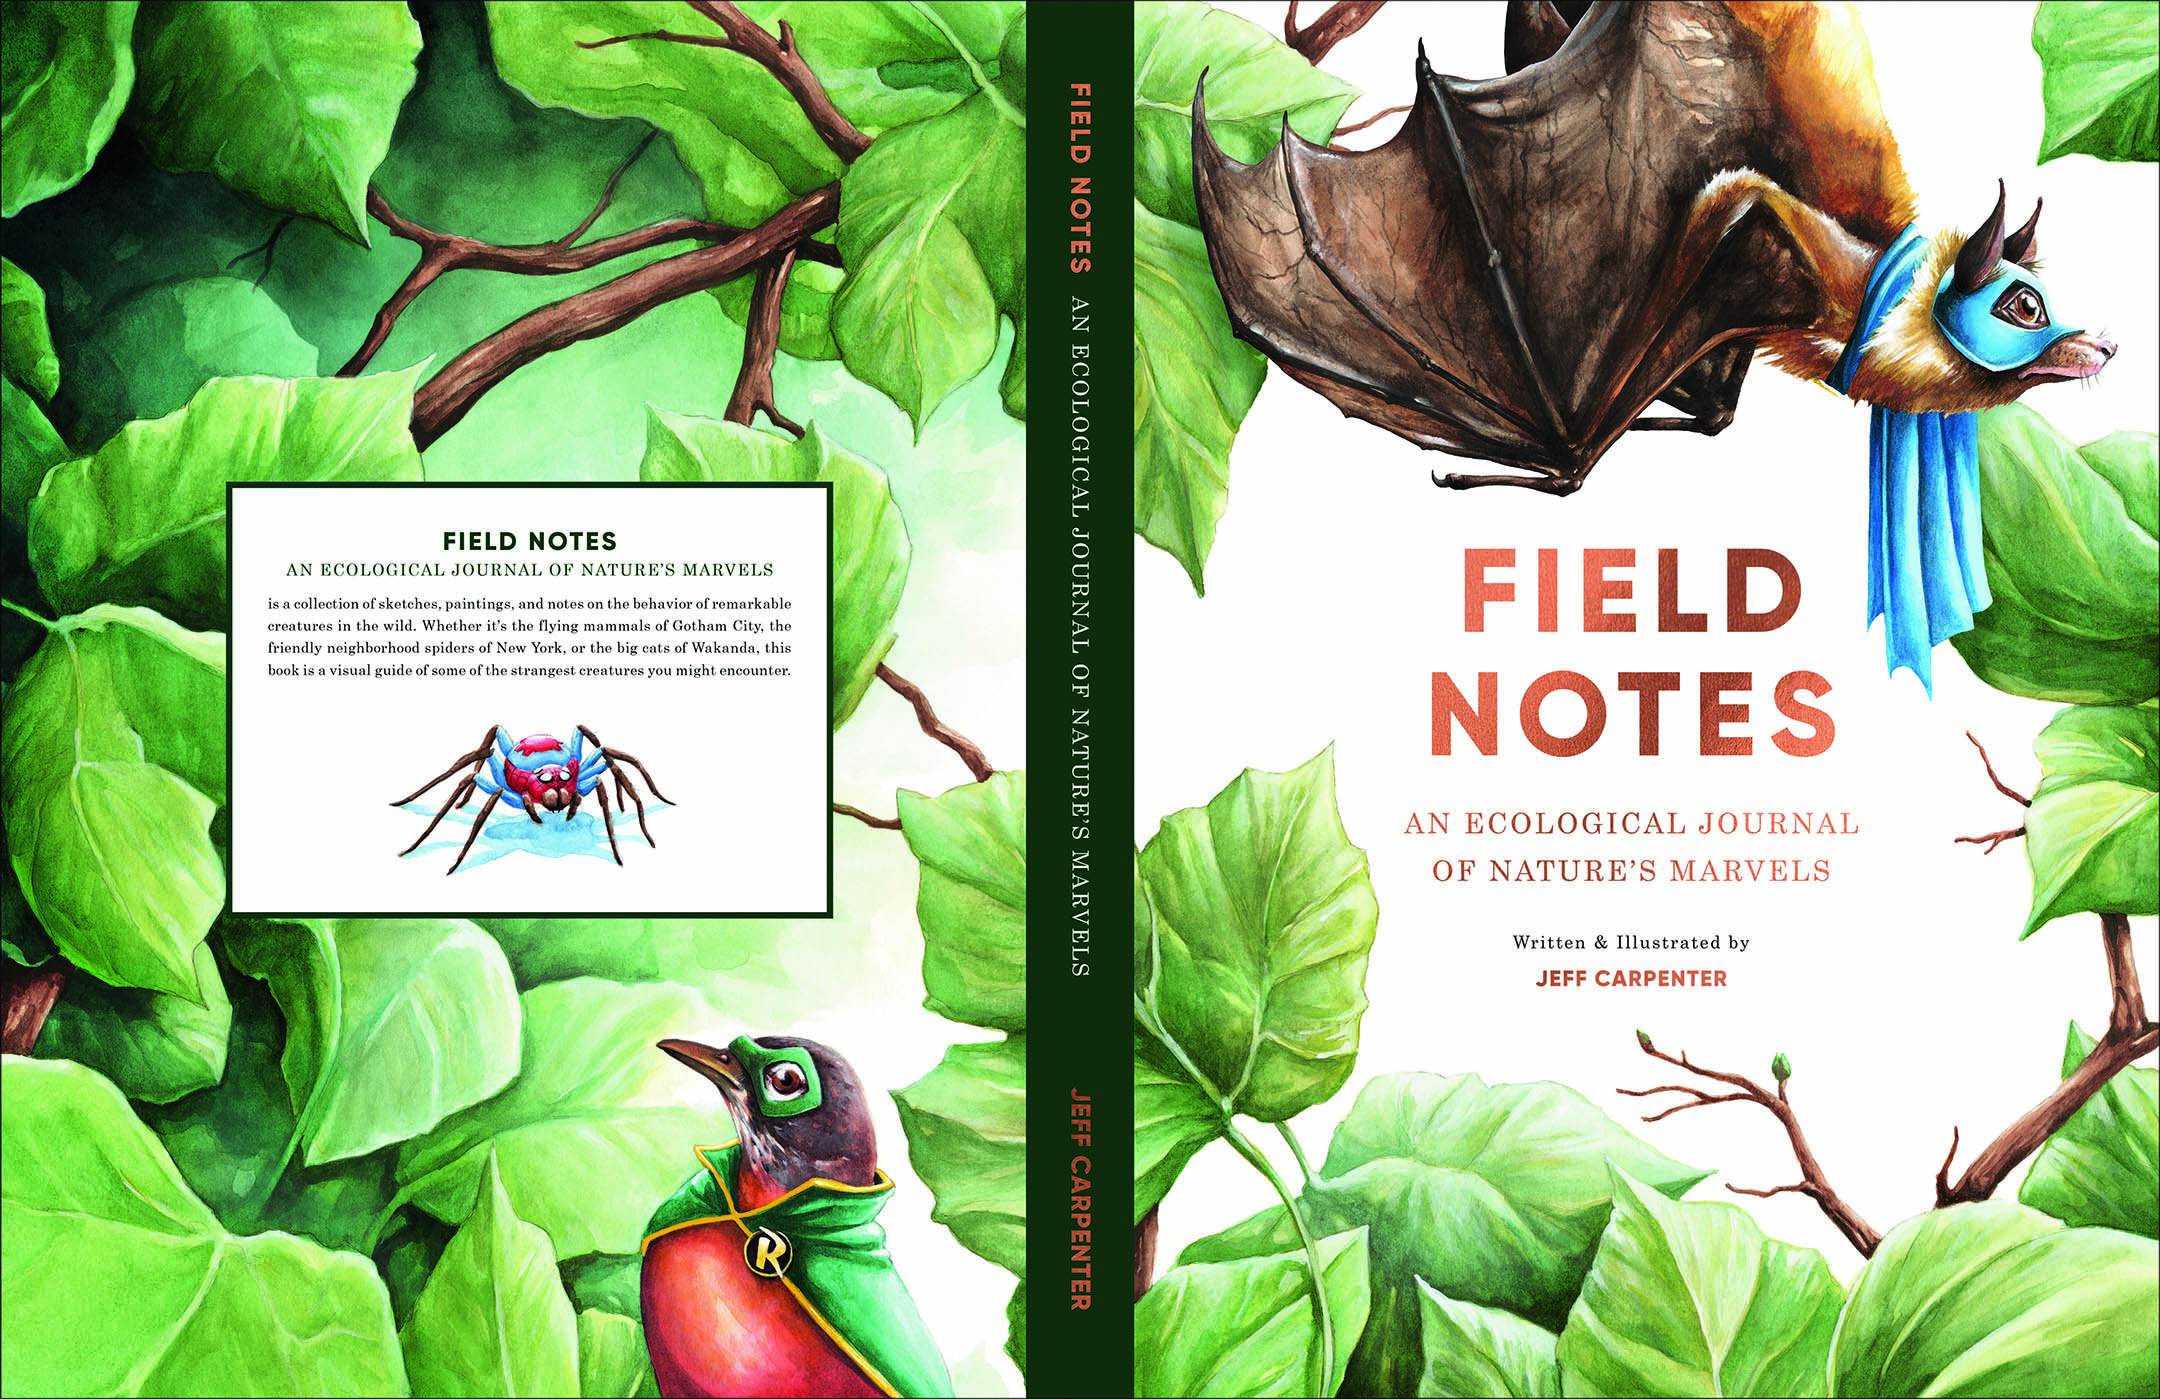 Book Cover . Illustration by Jeff Carpenter, text layout by Wren Bentley.